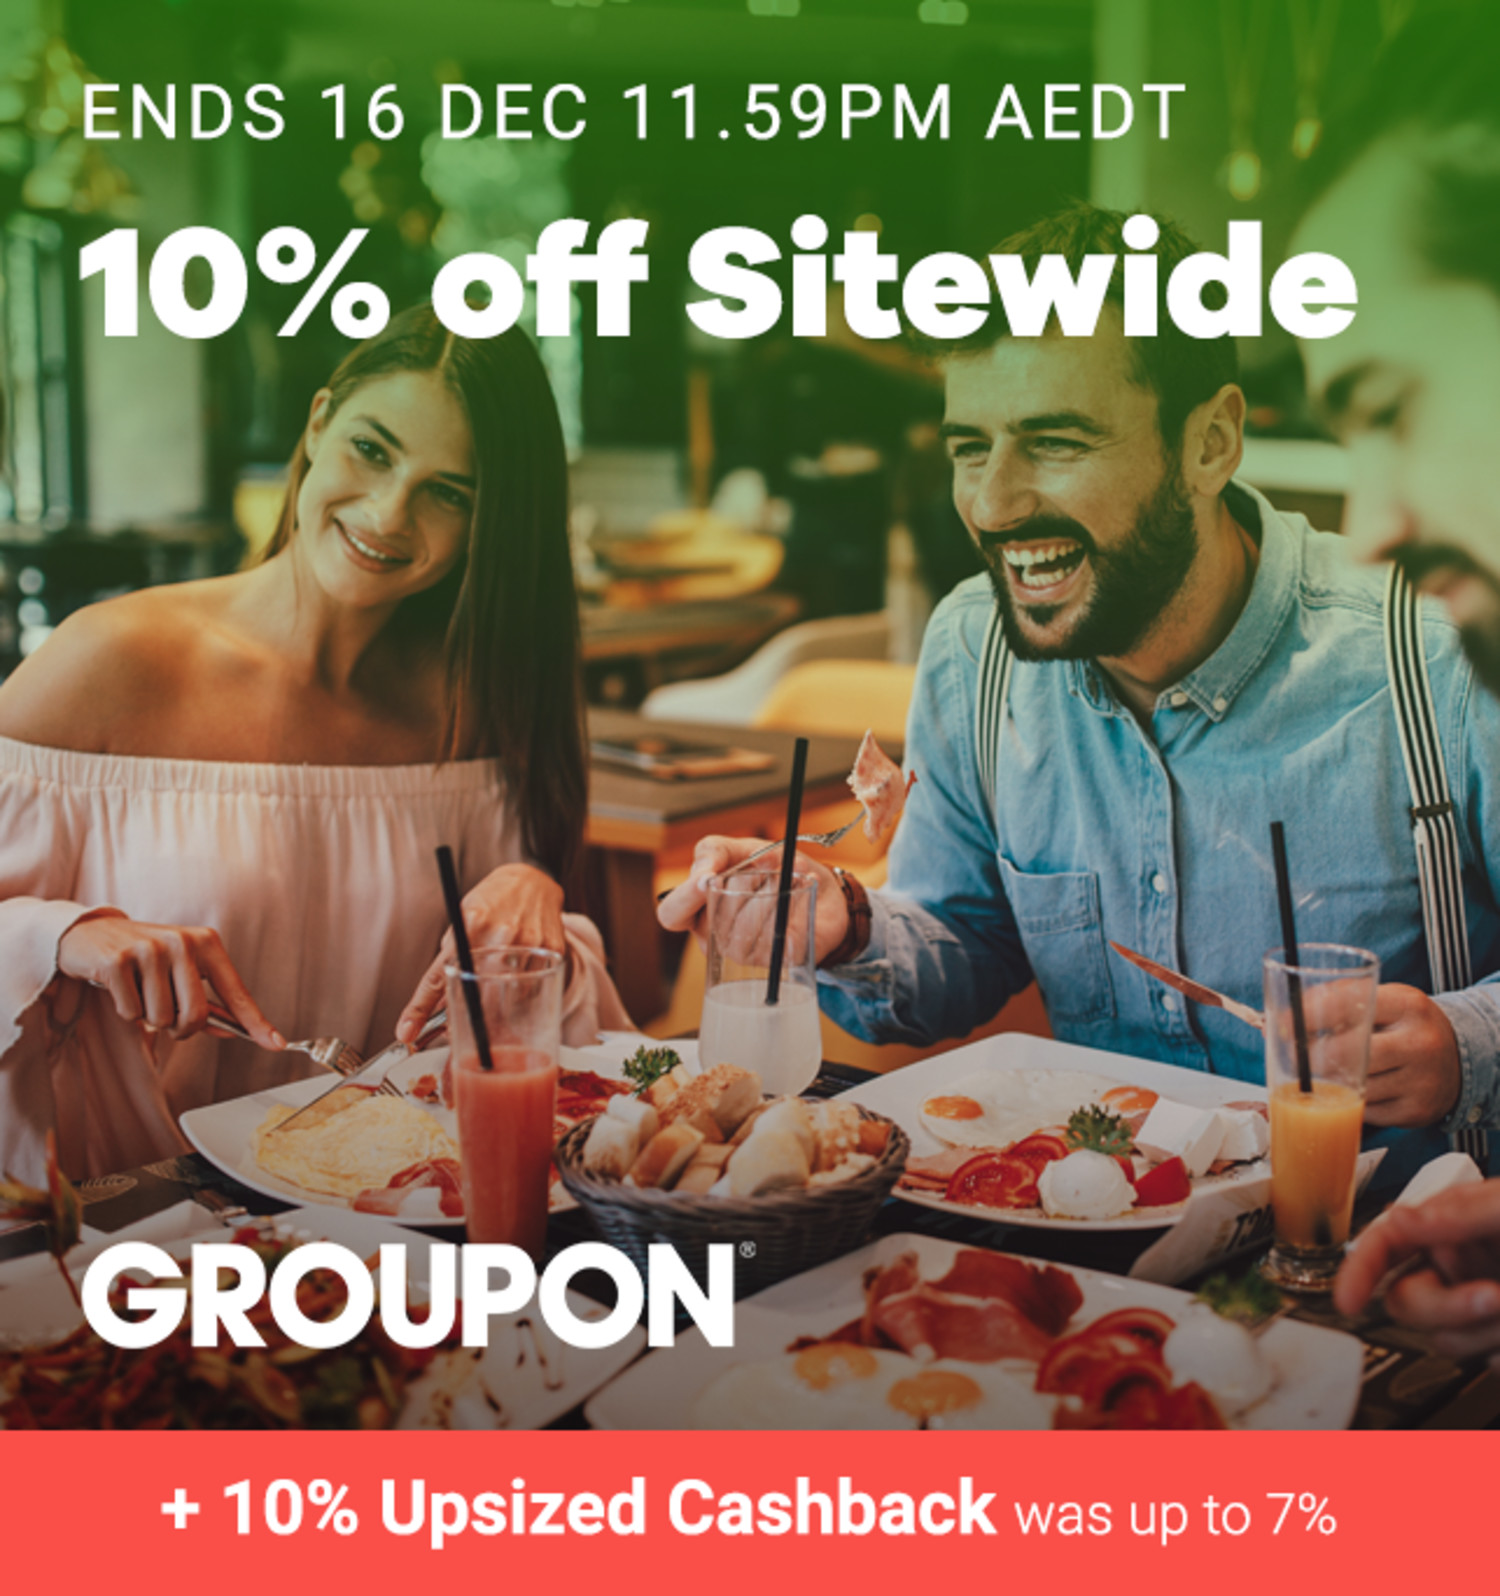 Groupon - 10% off Sitewide & 10% Upsized Cashback